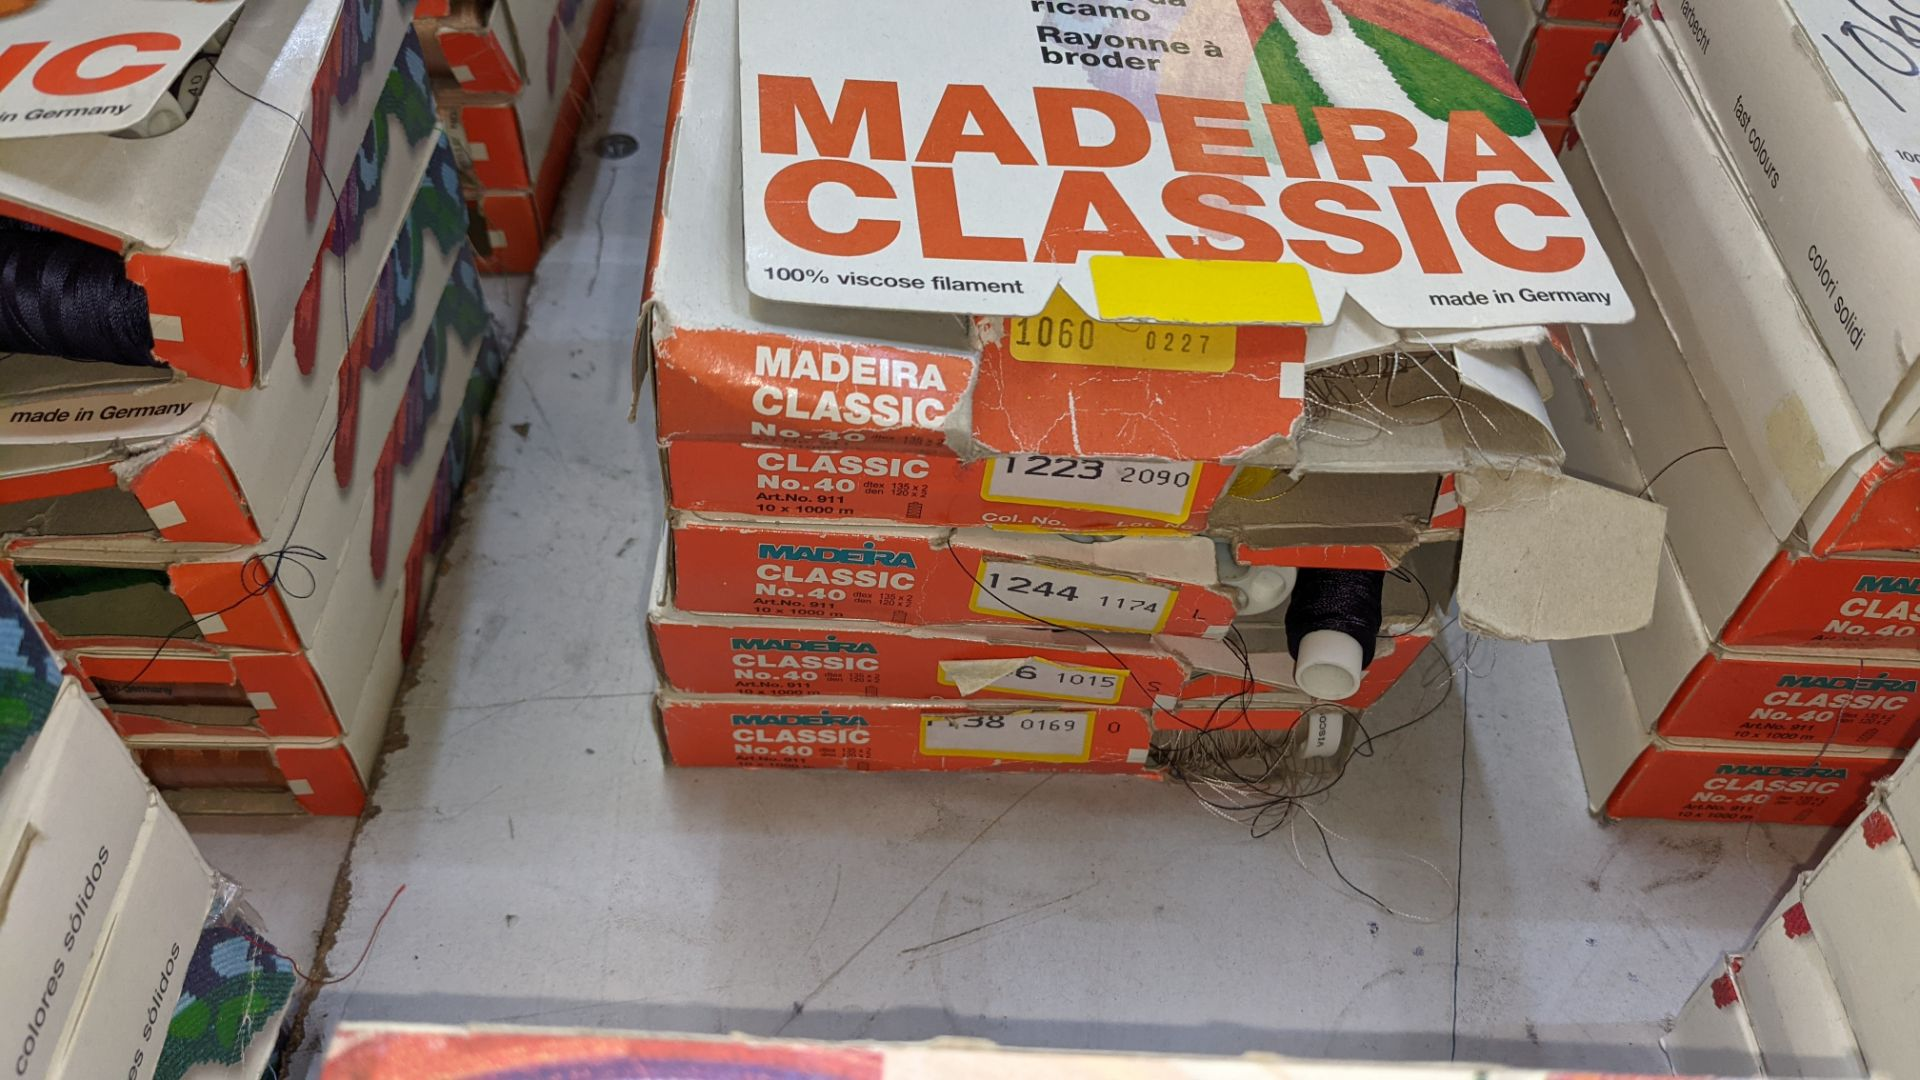 25 boxes of Madeira Classic No. 40 rayon embroidery thread - Image 4 of 12